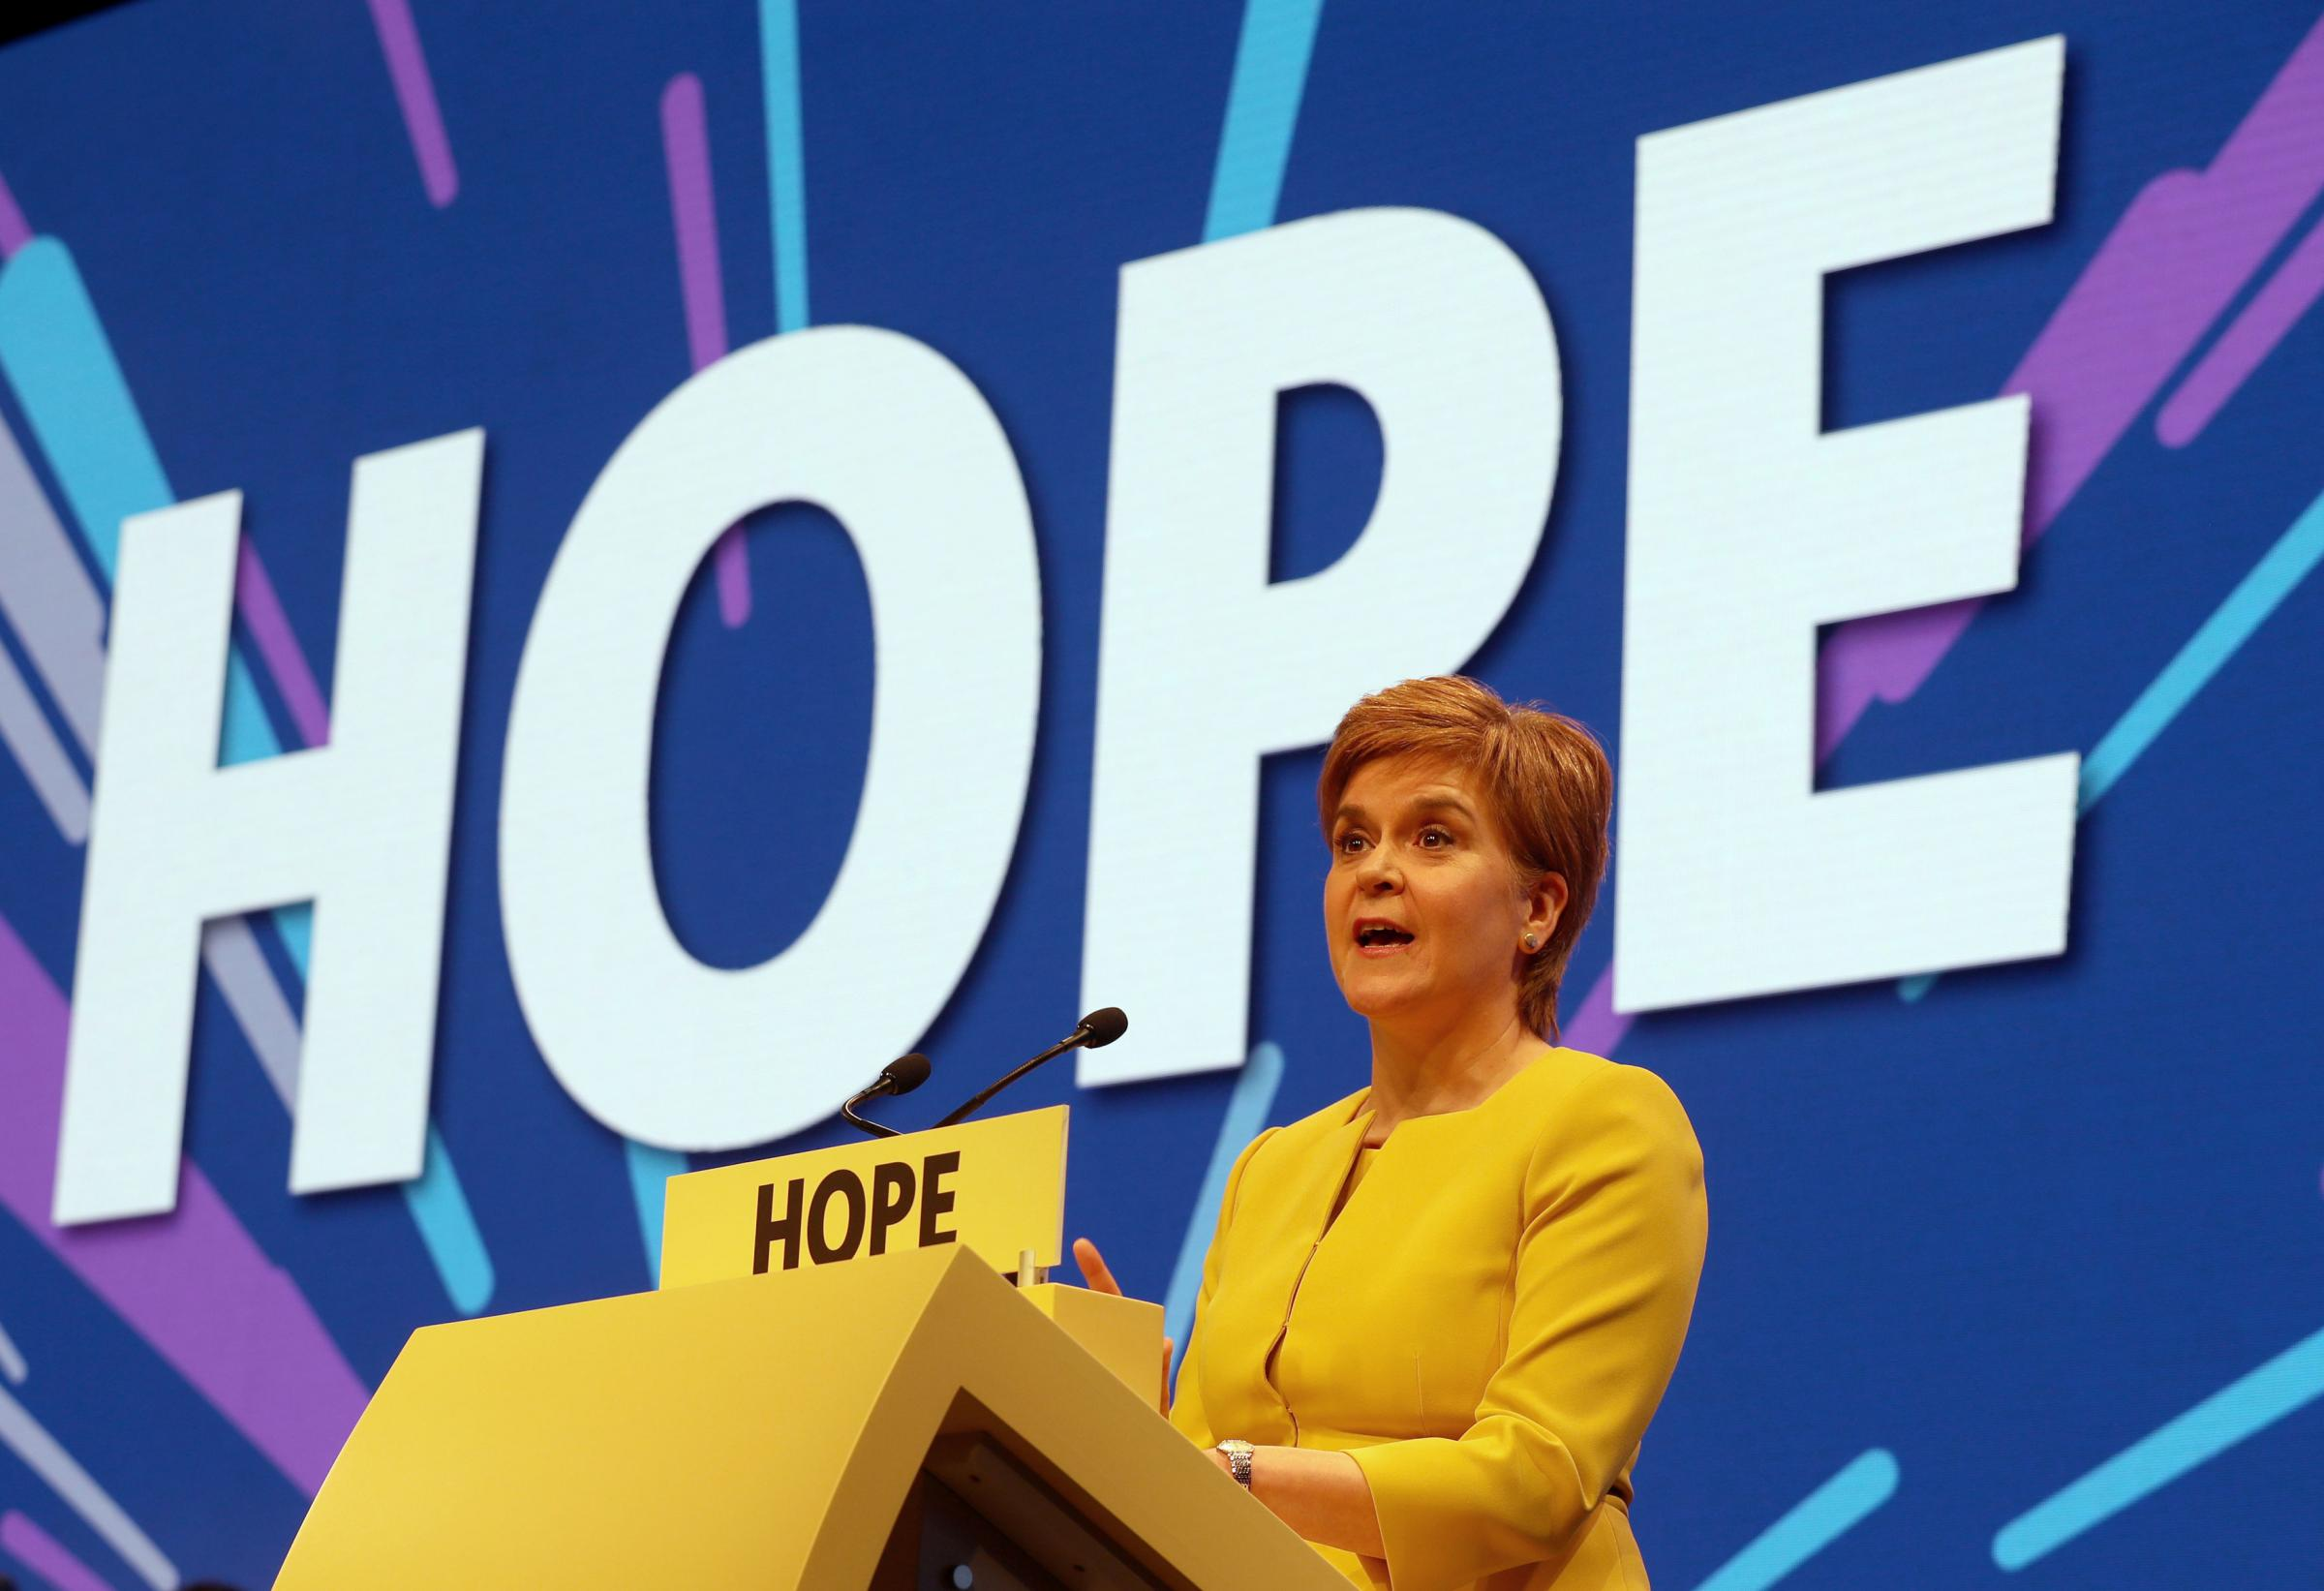 Nicola Sturgeon says rumours of her stepping down are